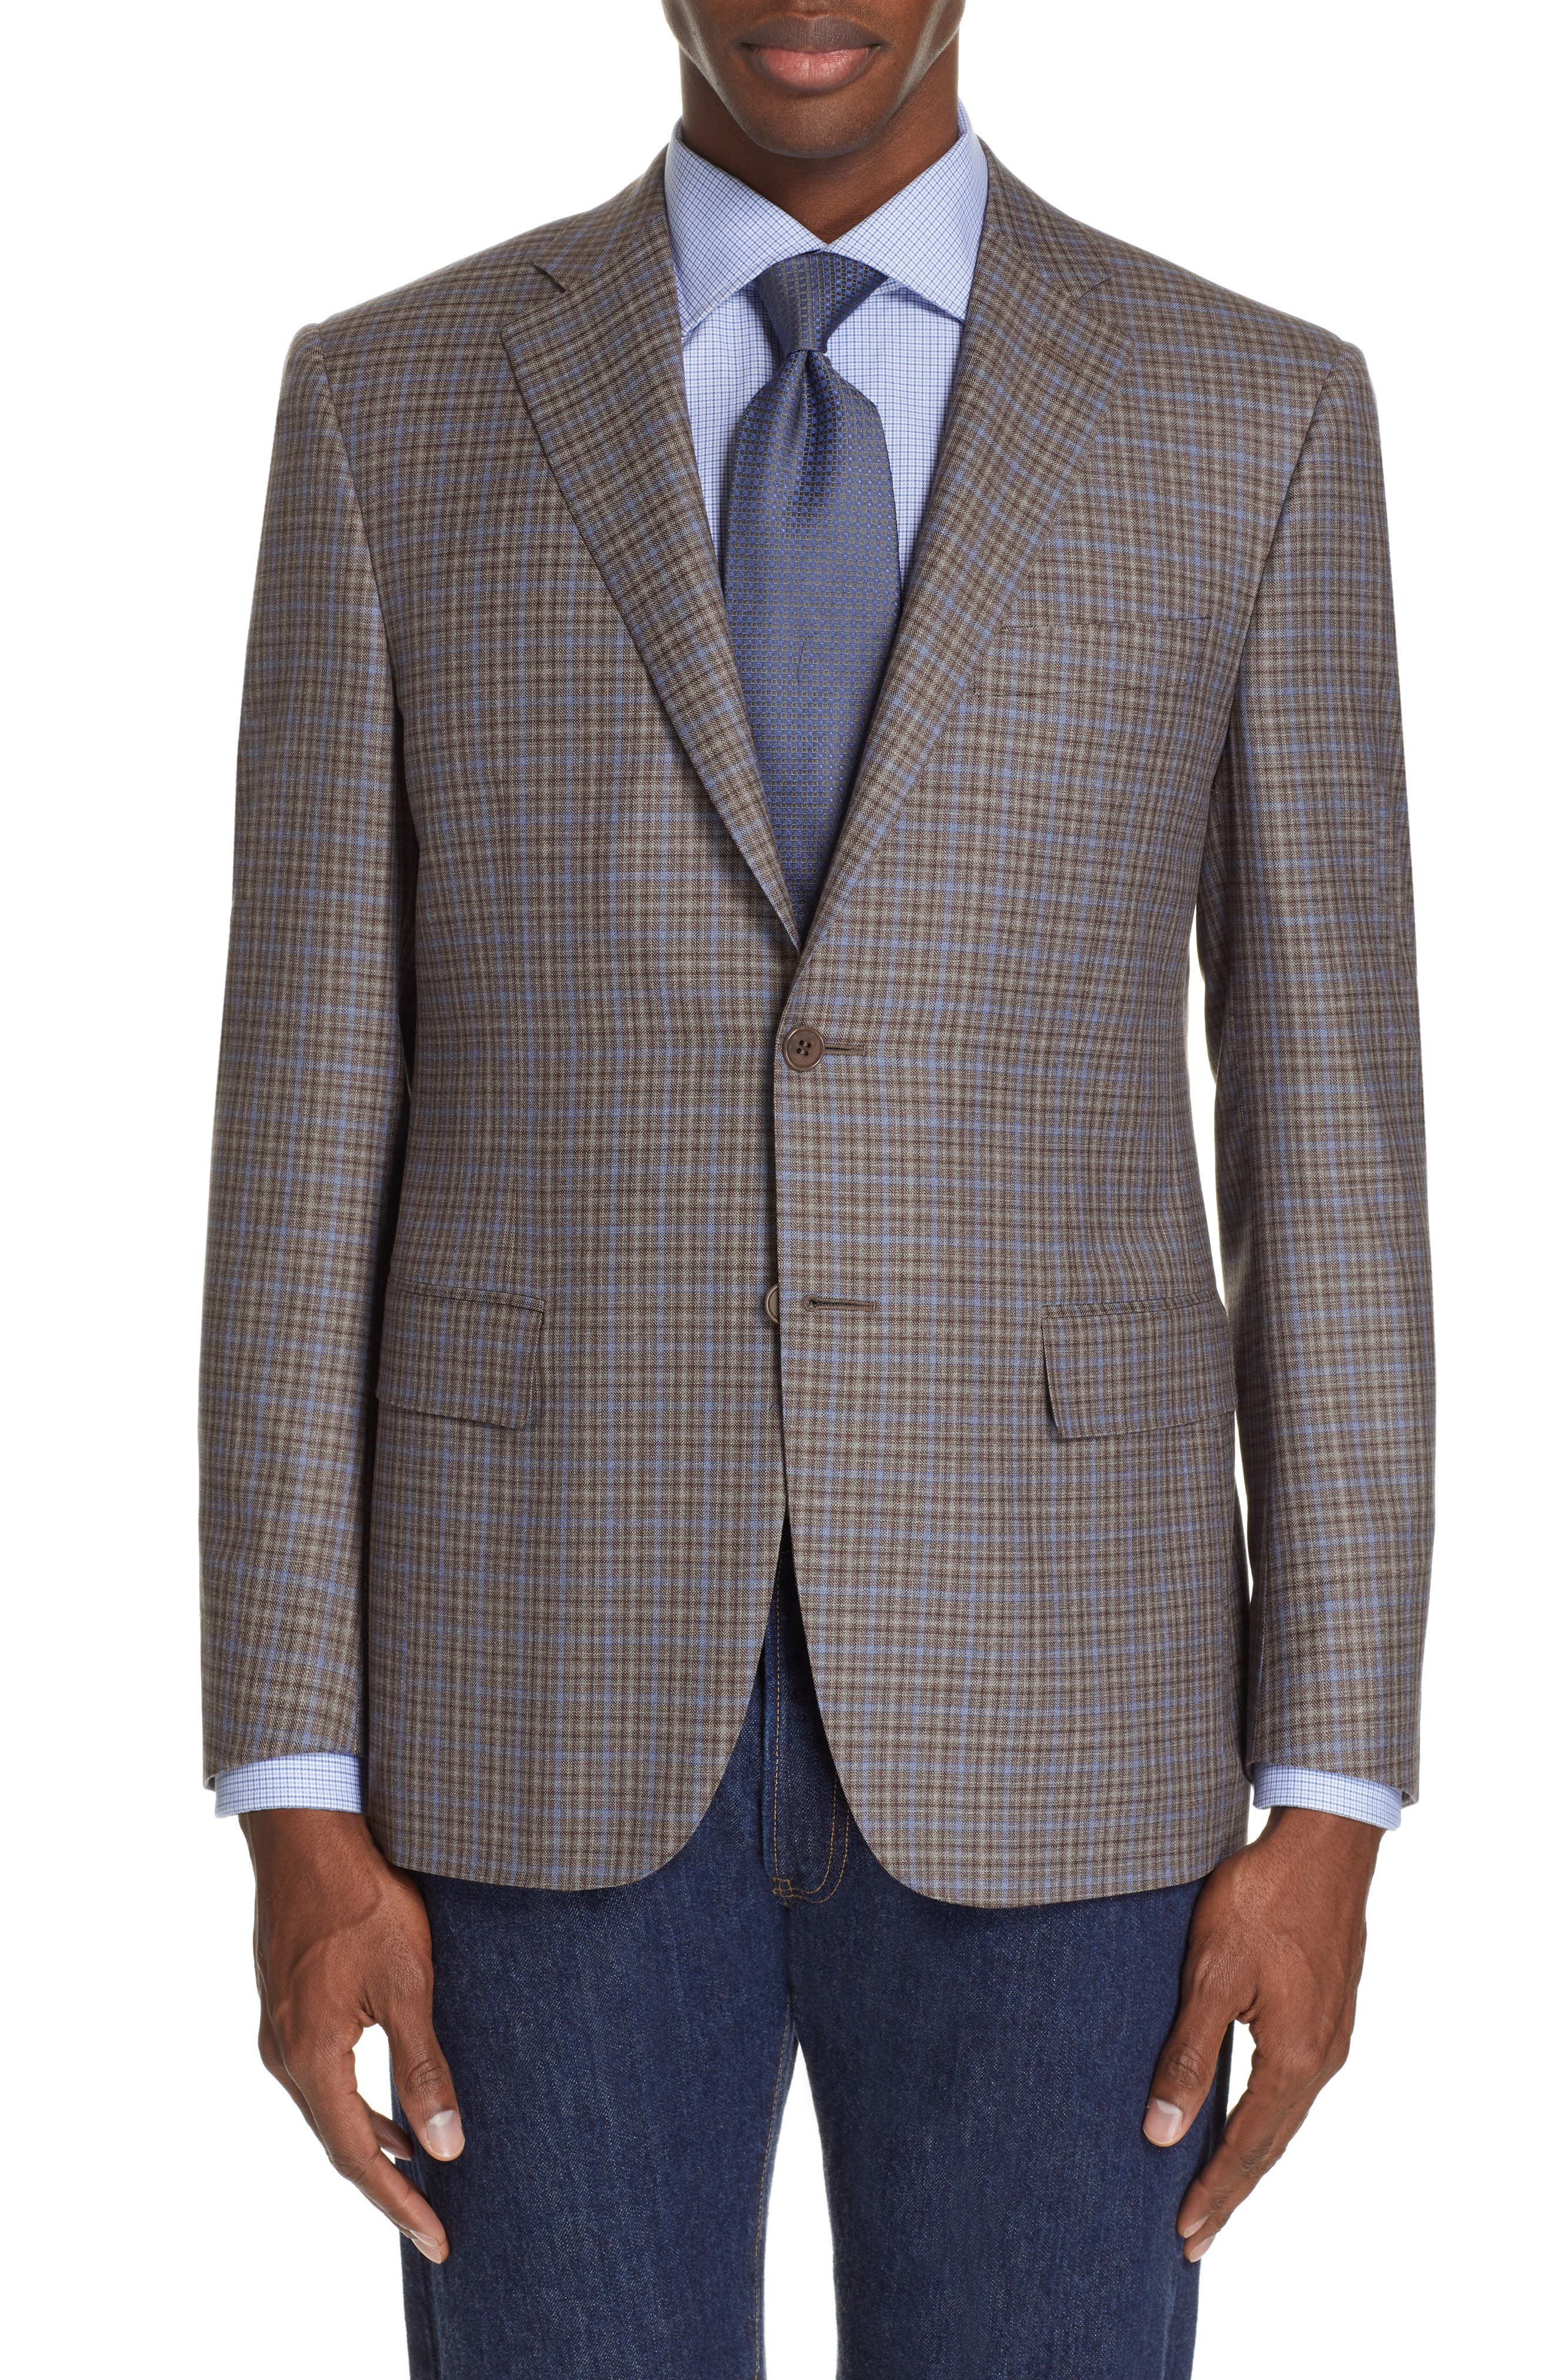 CANALI, Sienna Classic Fit Plaid Wool Sport Coat, Main thumbnail 1, color, BROWN